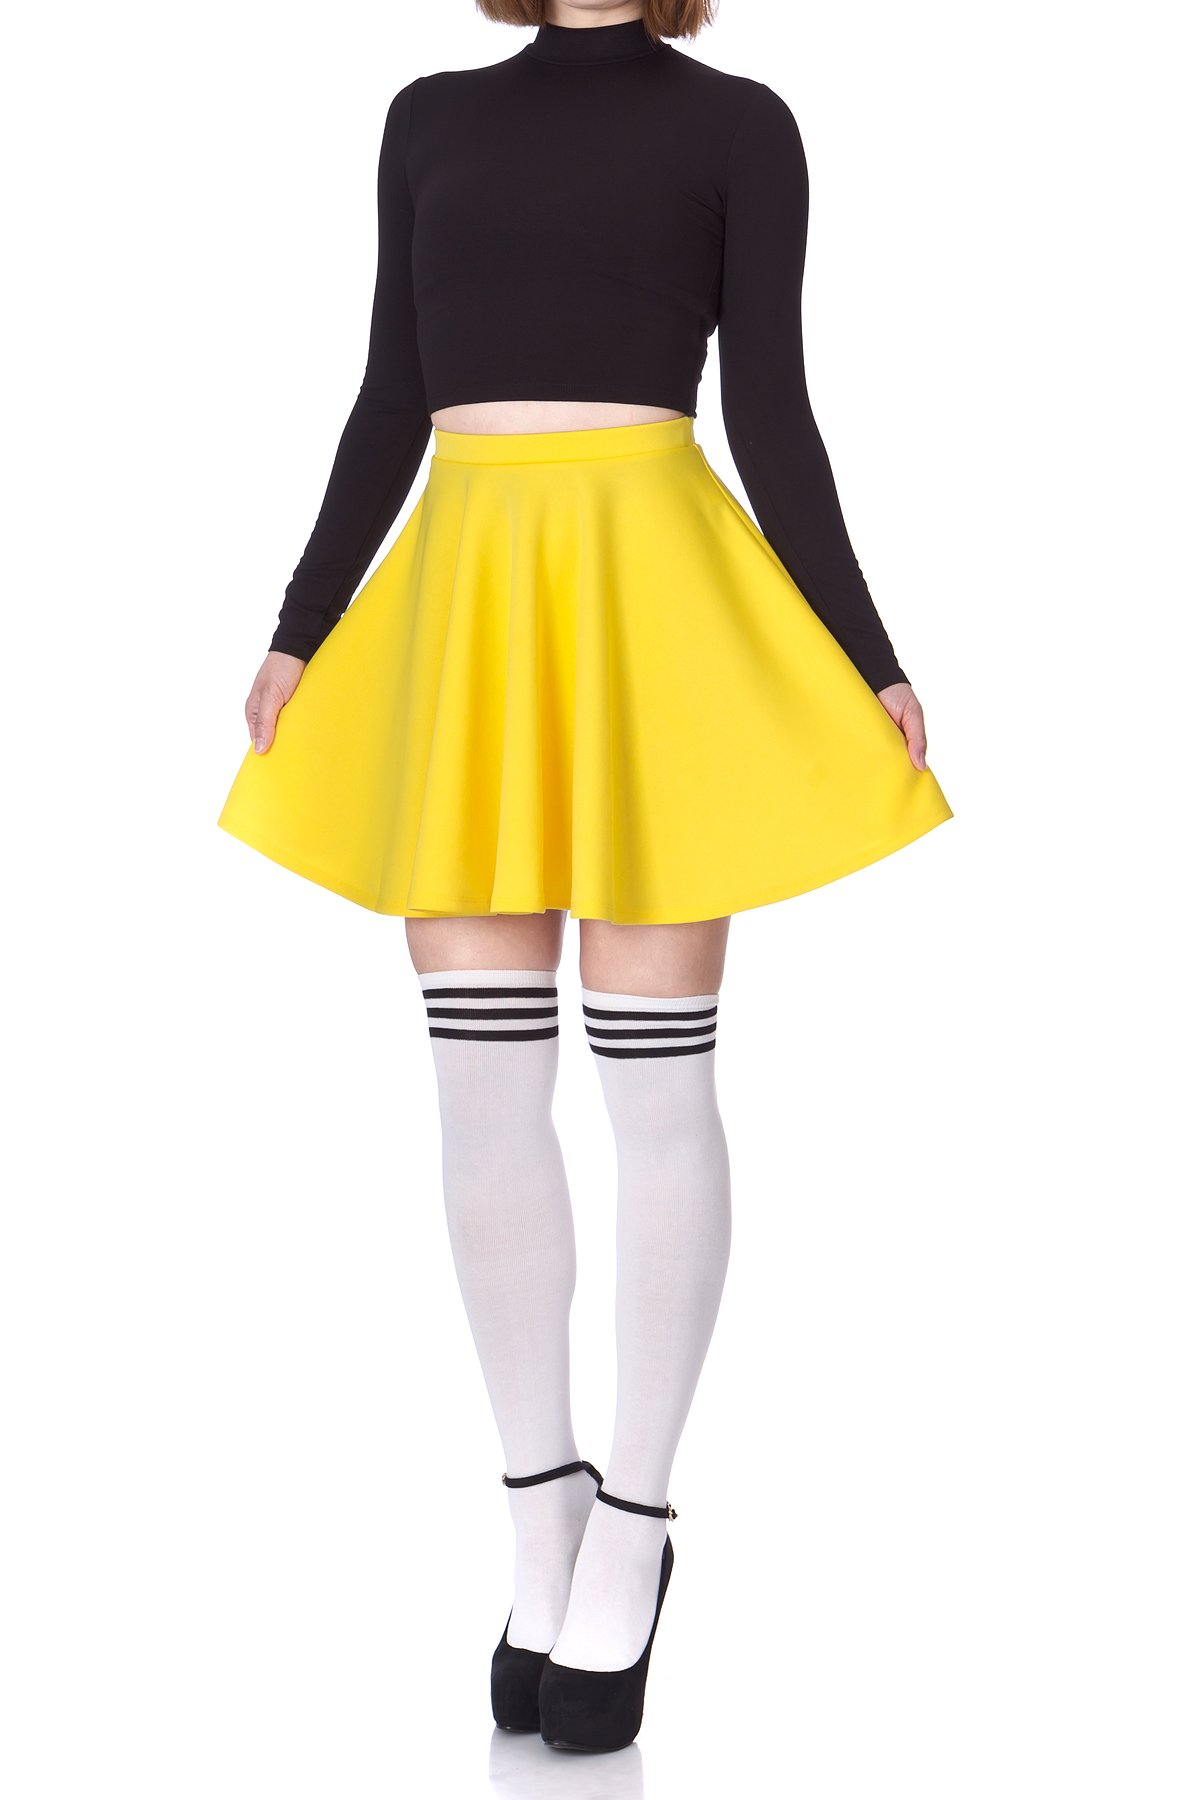 c1579f748d Flouncy High Waist A line Full Flared Circle Swing Dance Party Casual  Skater Short Mini Skirt